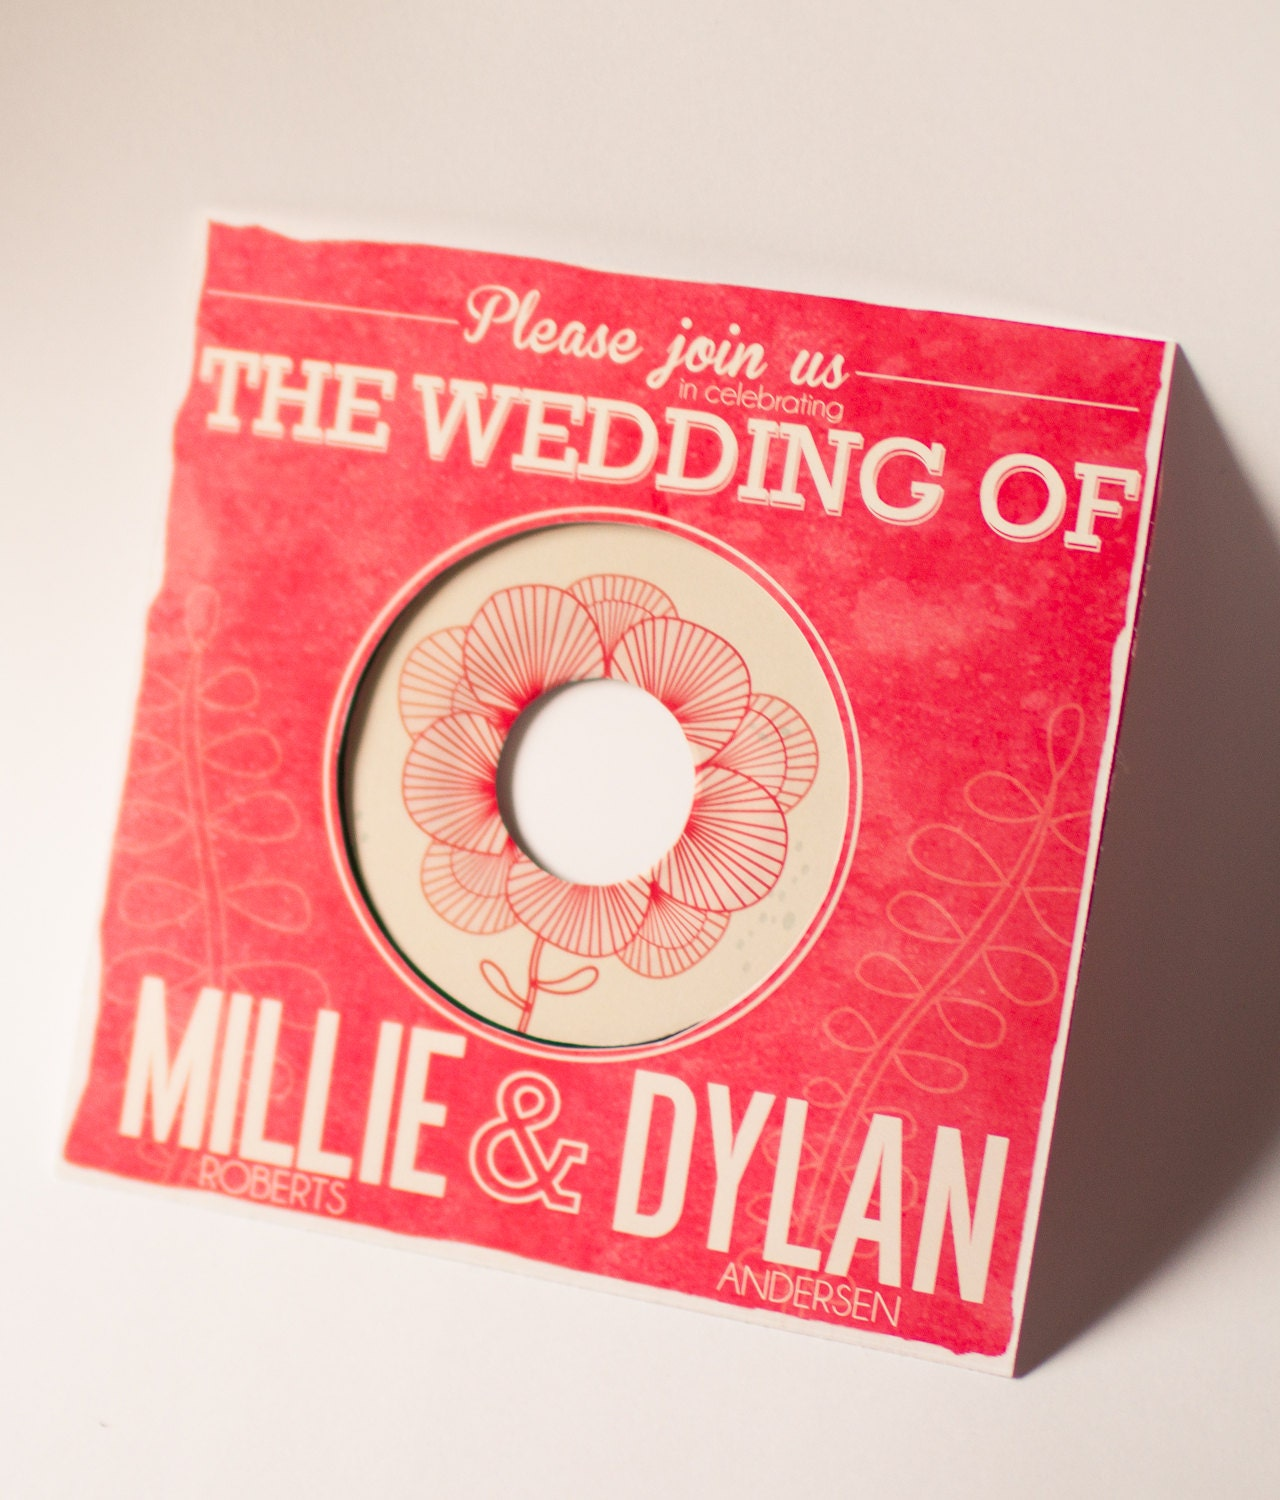 Floral vintage music record wedding invitation for Etsy vinyl wedding invitations